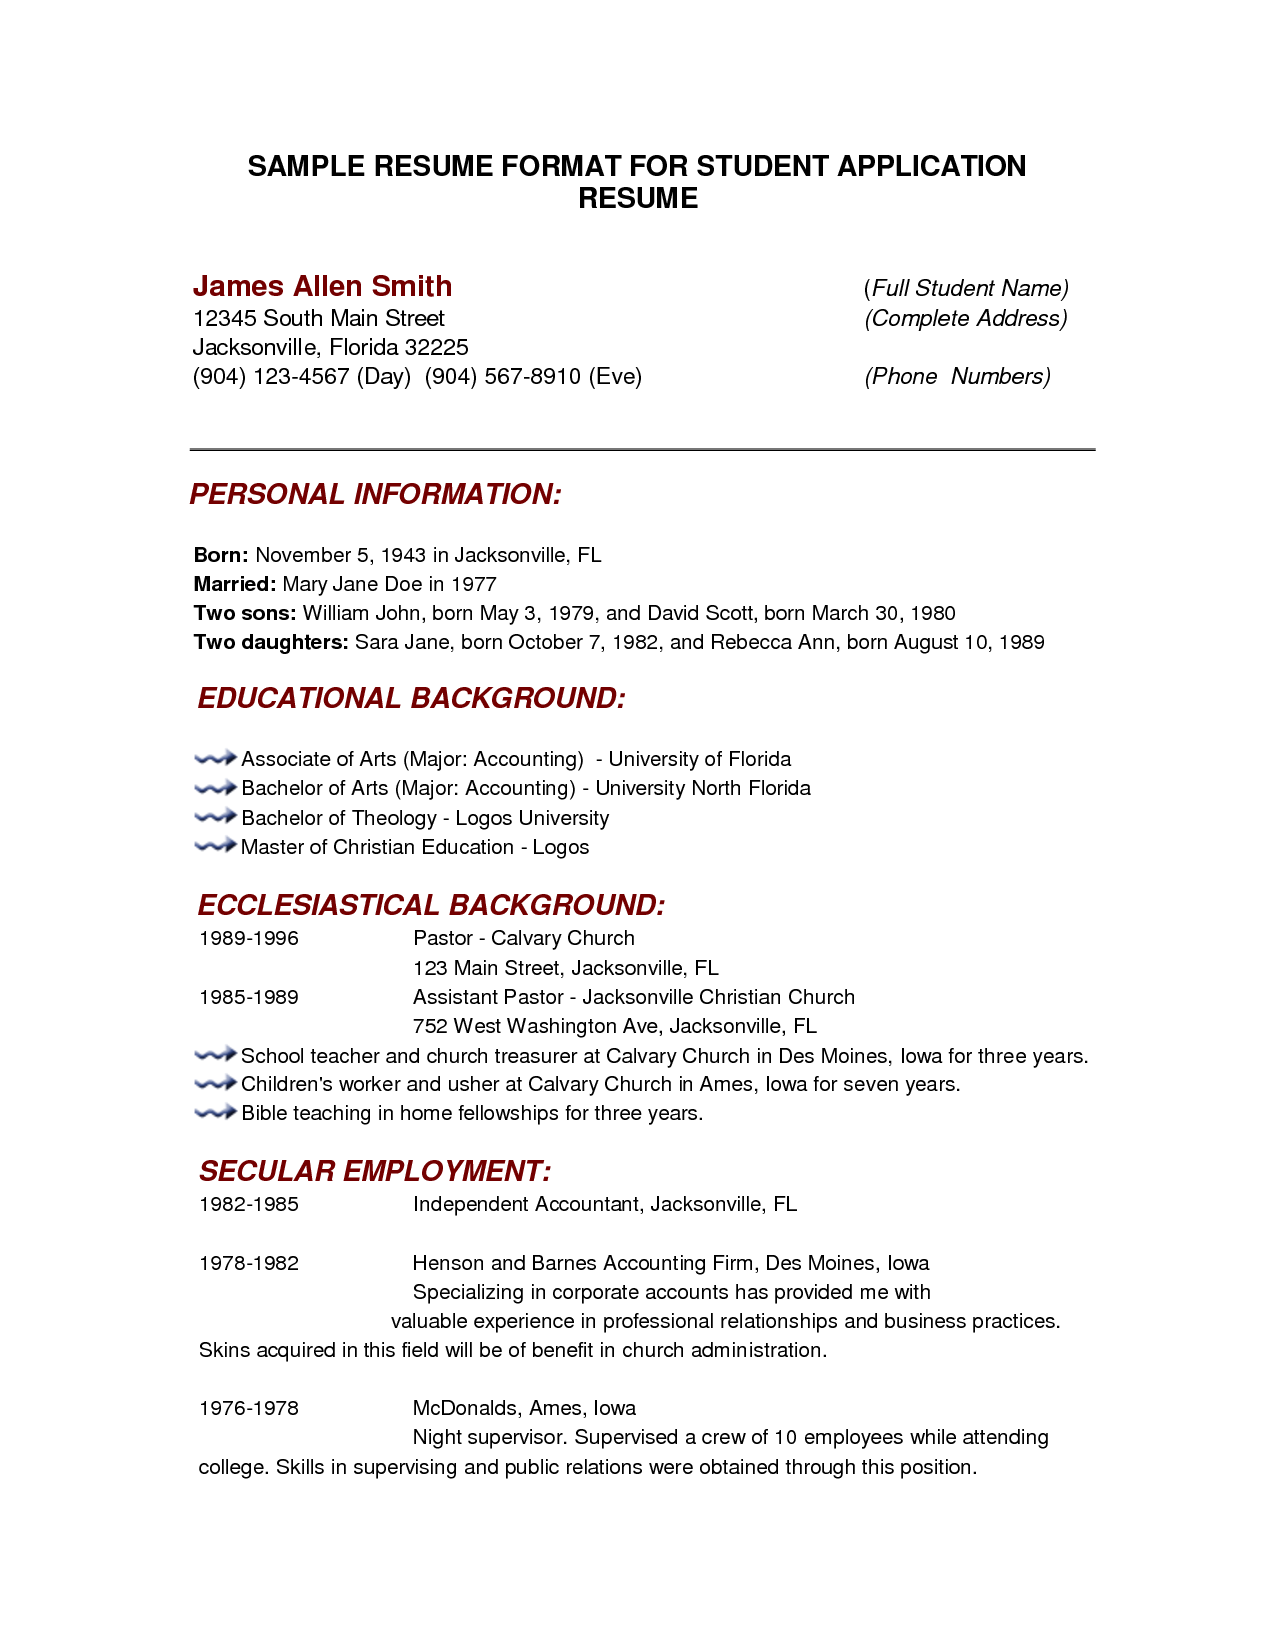 Resume Sample For College Student Resume Template For College Students Http Www